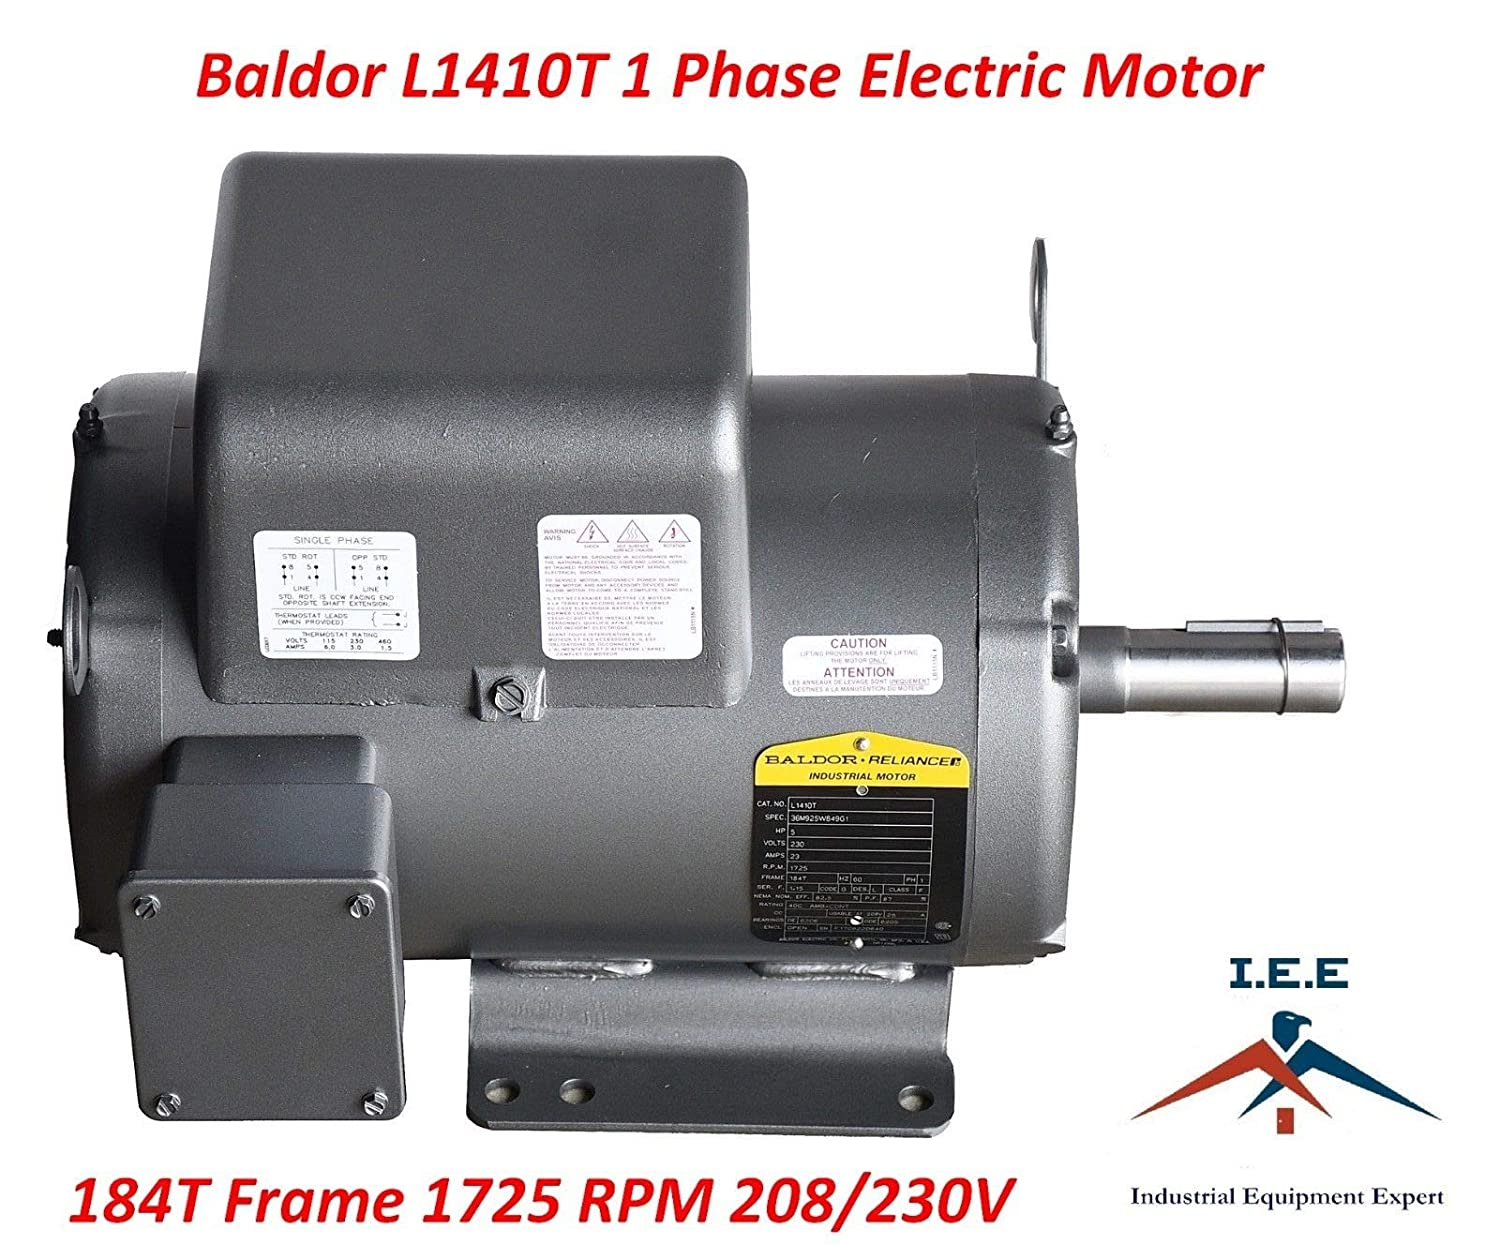 5 HP Single Phase Baldor Electric Compressor Motor 184T Frame ... Baldor T Motor Single Phase Compressor Wiring Diagram on baldor ac motor diagrams, 2 phase transformer diagrams, baldor vfd wiring-diagram, l1410t baldor electric motors wiring diagrams, air compressor 12 volt light wiring diagrams, baldor motor parts manual, capacitor start motor diagrams, single phase capacitor motor diagrams, spaguts spa to 220v wiring diagrams, baldor electric motor parts diagrams, boat lift switch diagrams, motor connections diagrams,